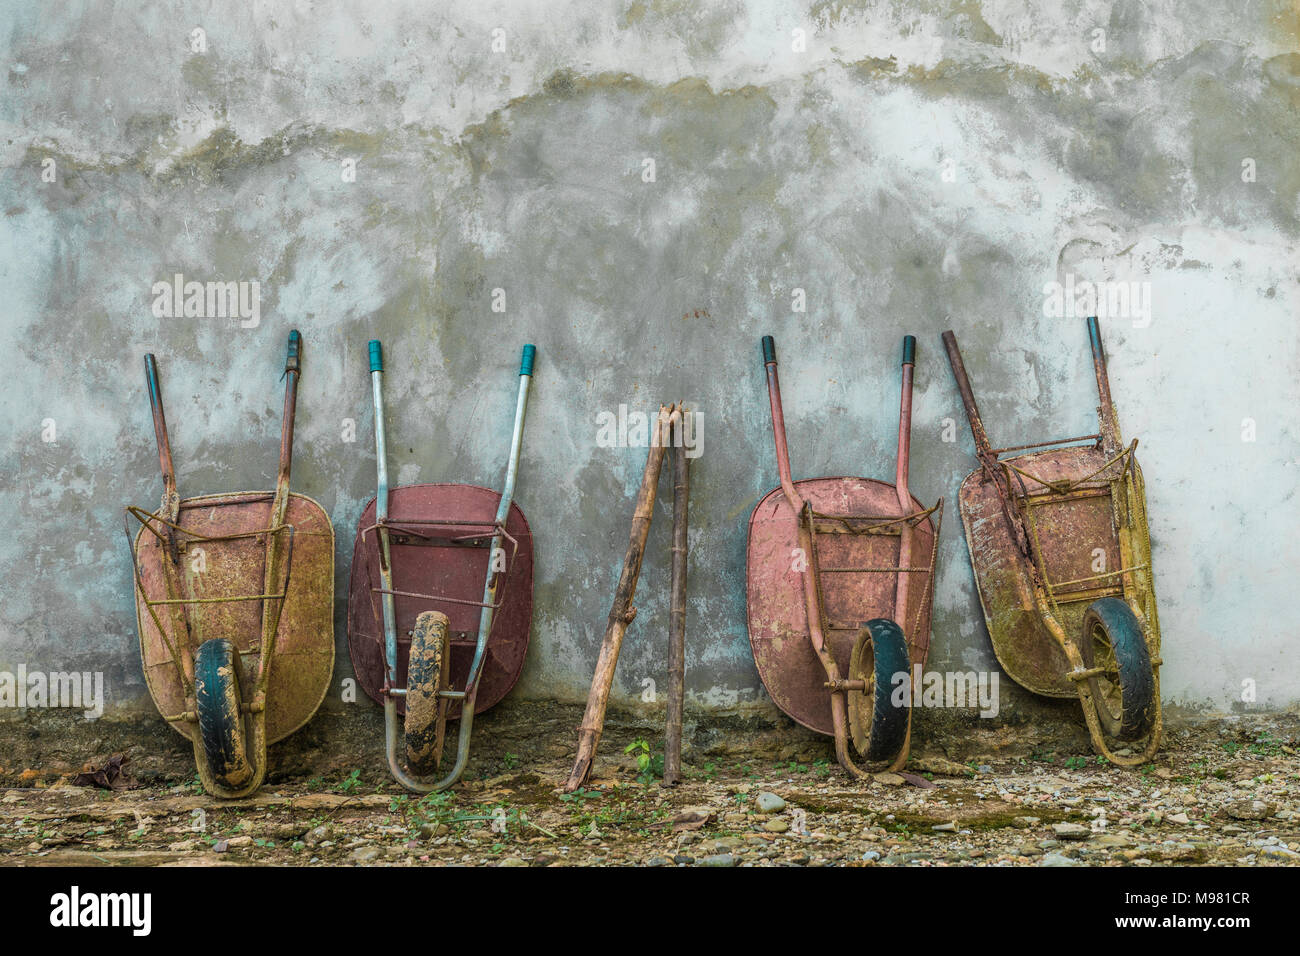 Four old wheelbarrows leaning against wall - Stock Image